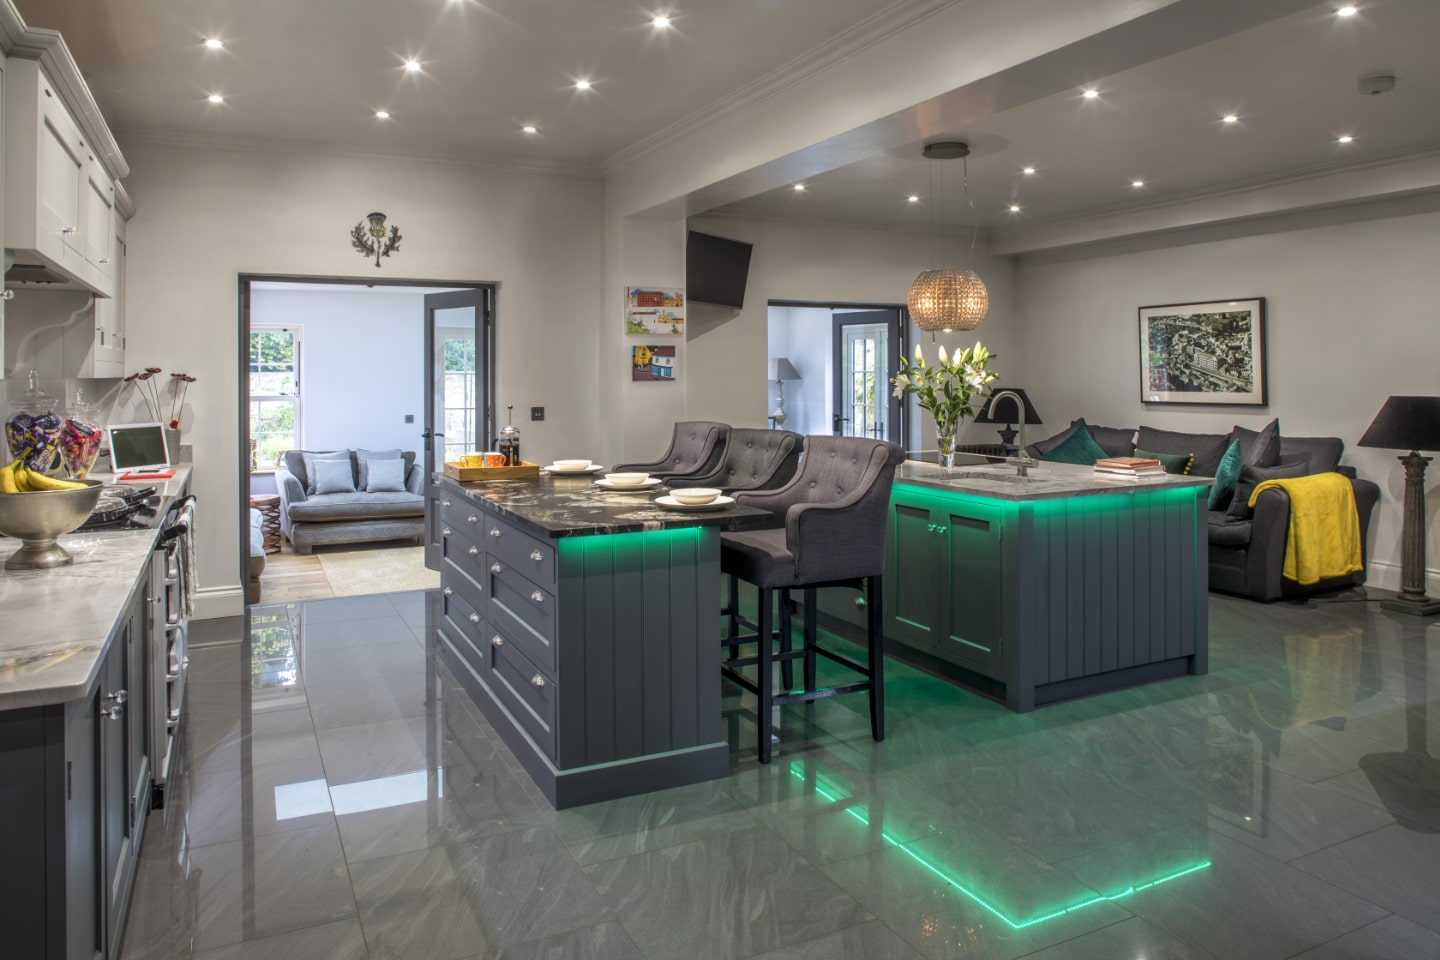 A bespoke kitchen with breakfast bar and green LED lighting underneath.